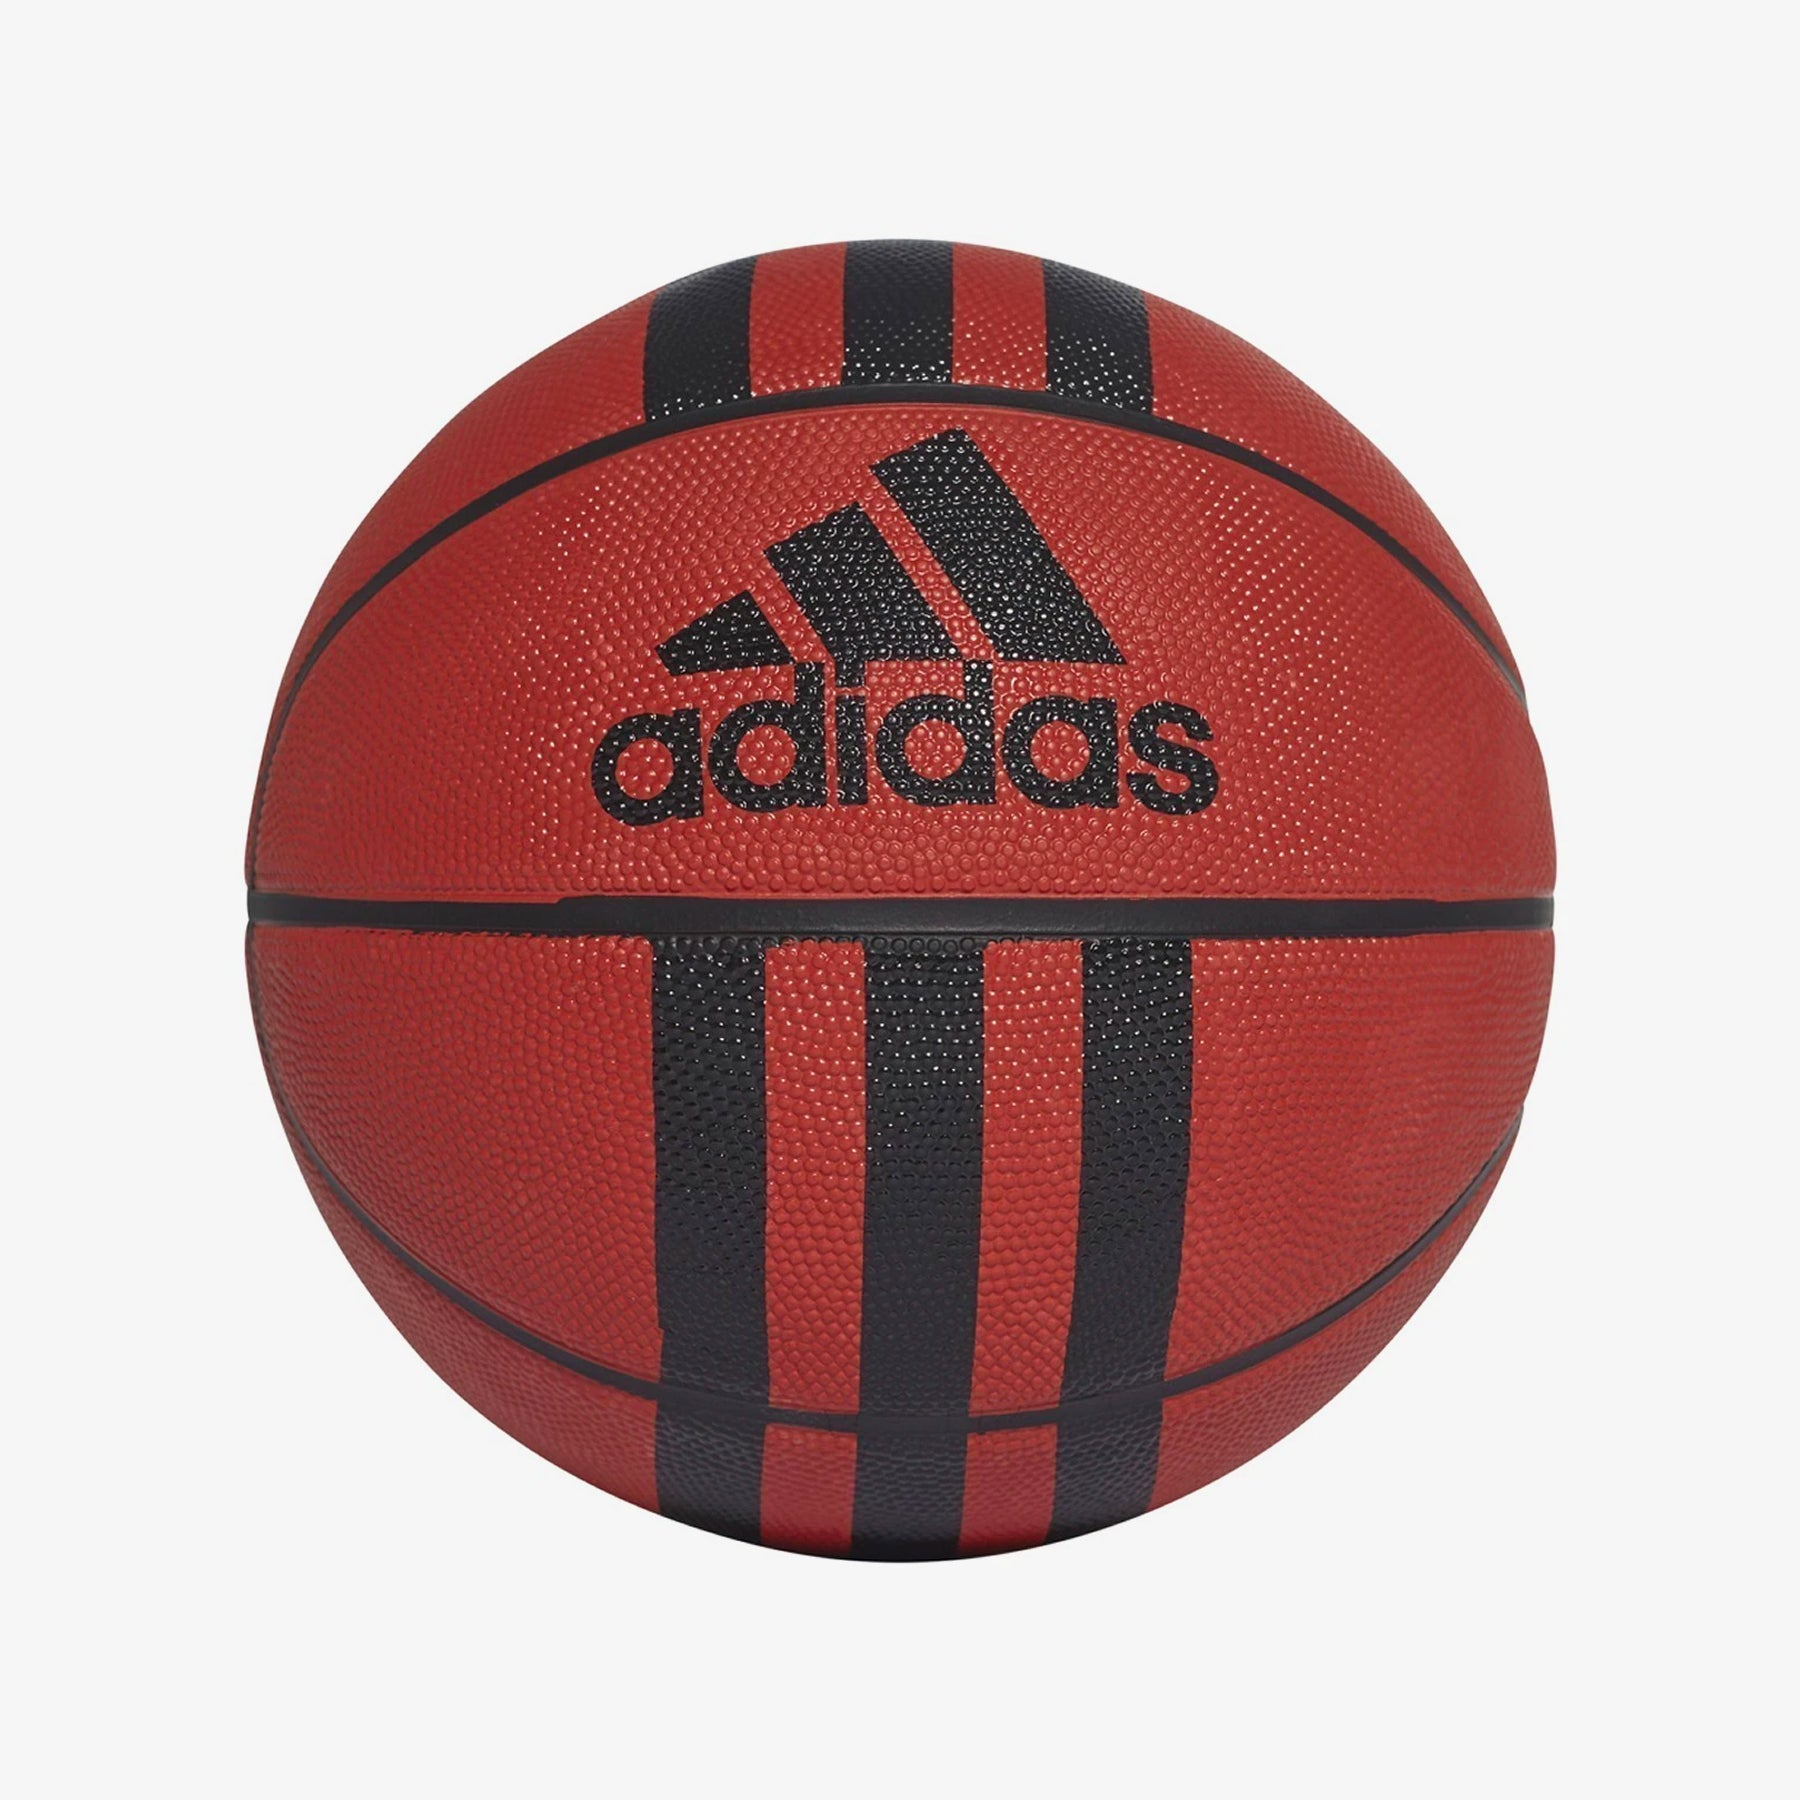 3 Stripe D 29.5 Basketball